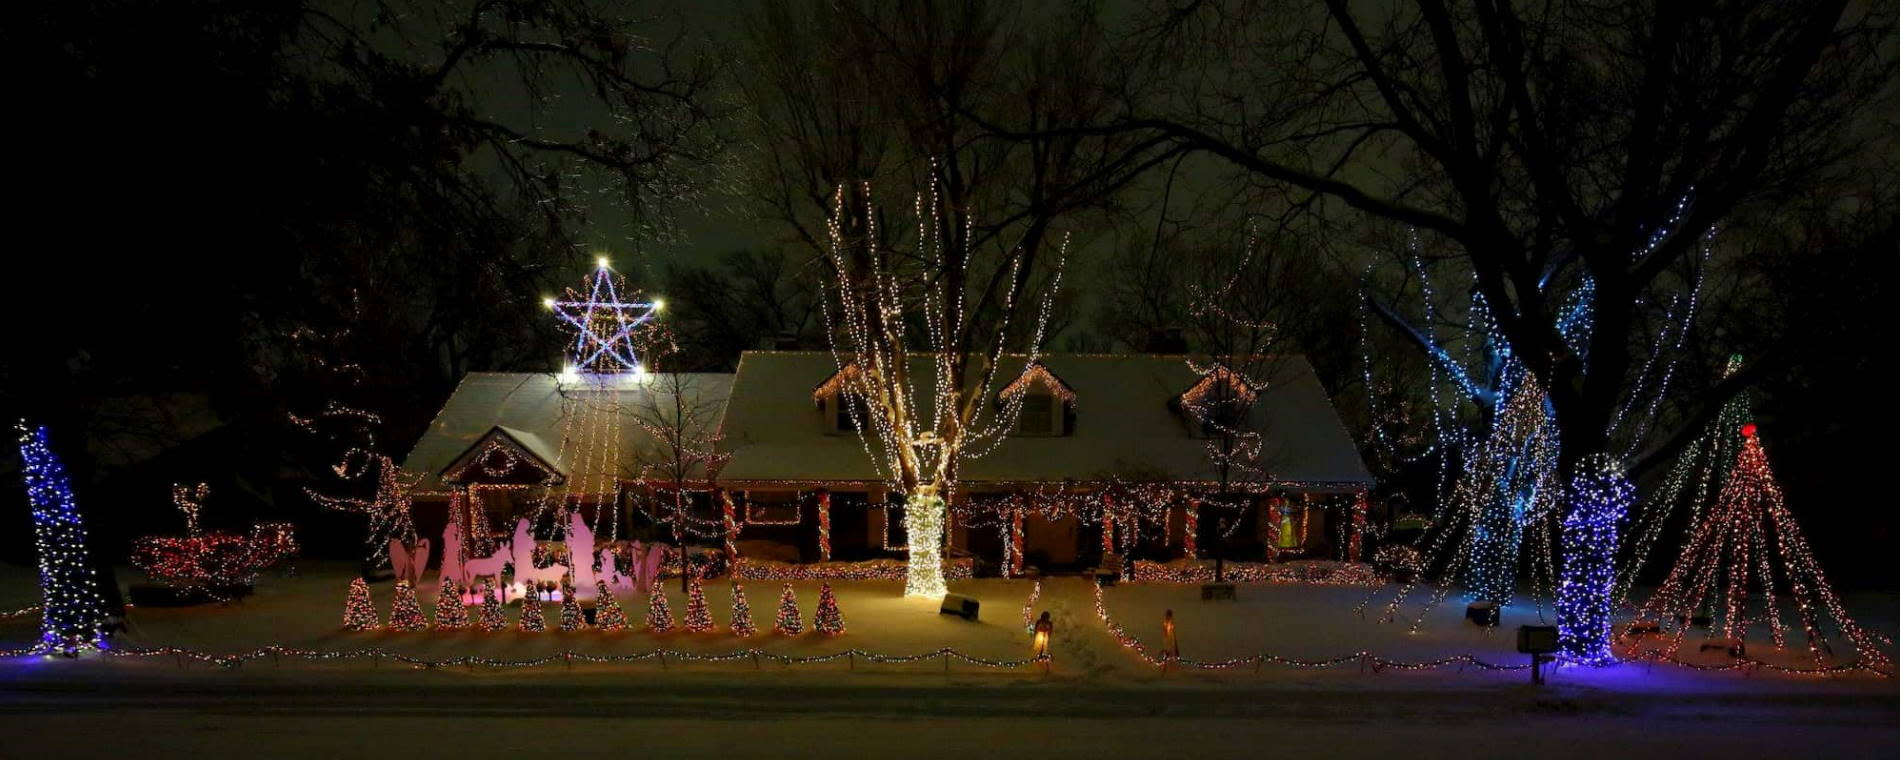 Christmas Lights Wichita 2020 The Marshall Family Christmas Lights 2020